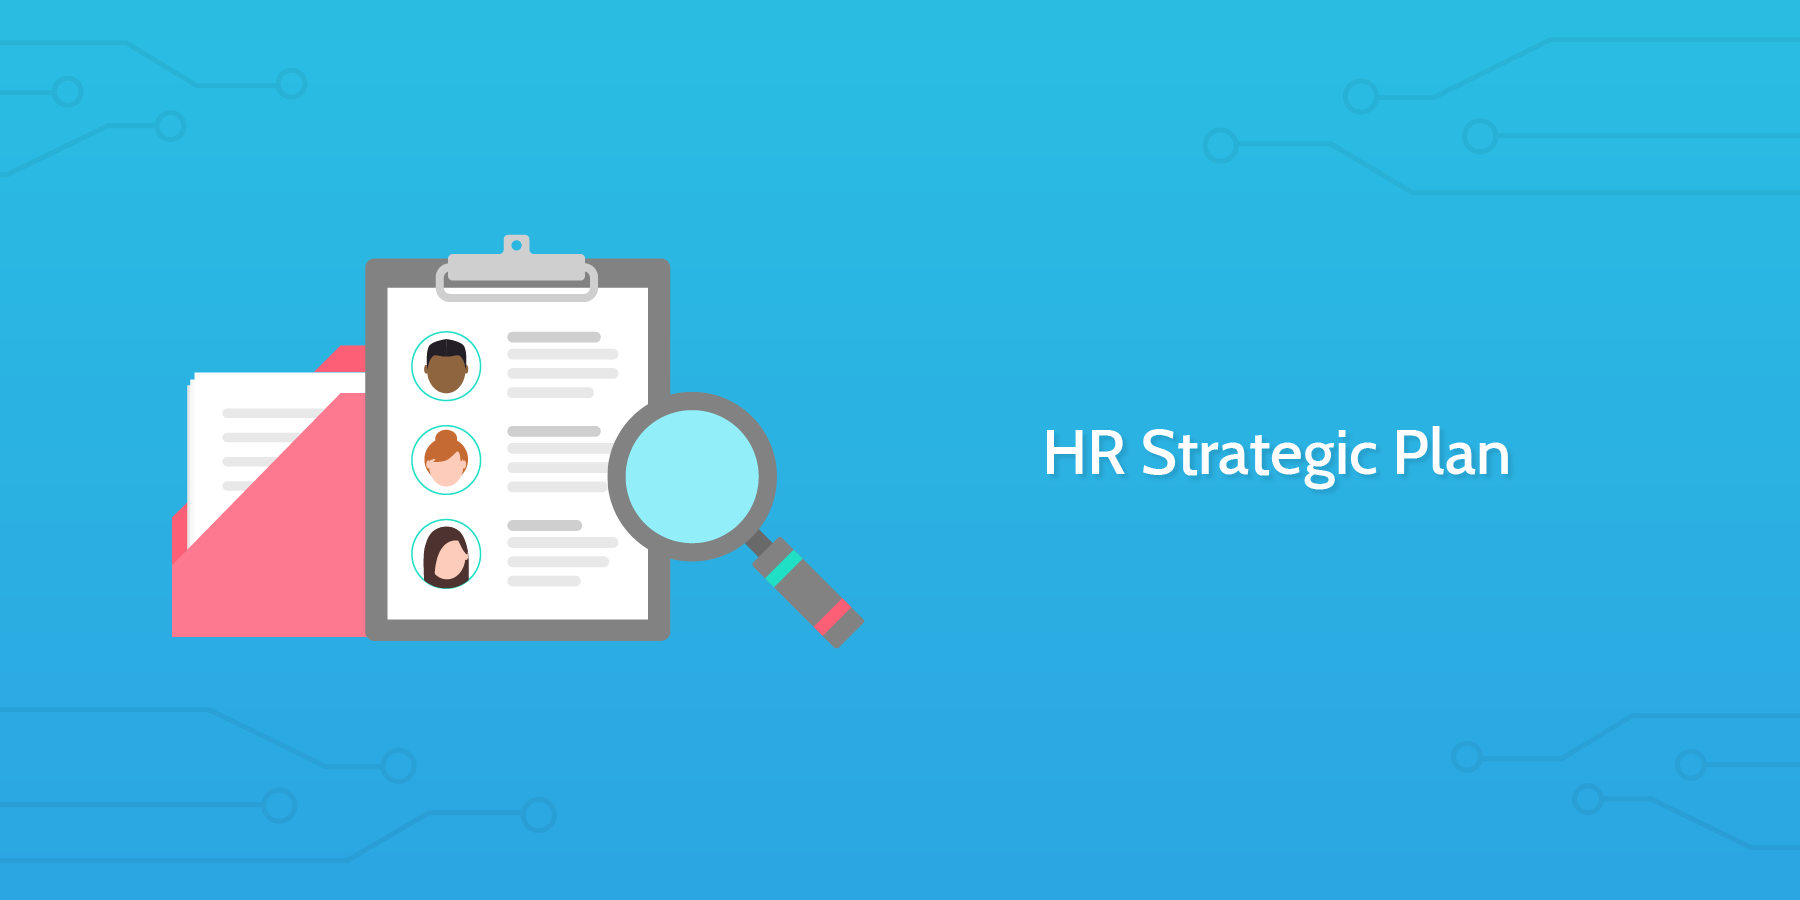 Introduction to the HR Strategic Plan: